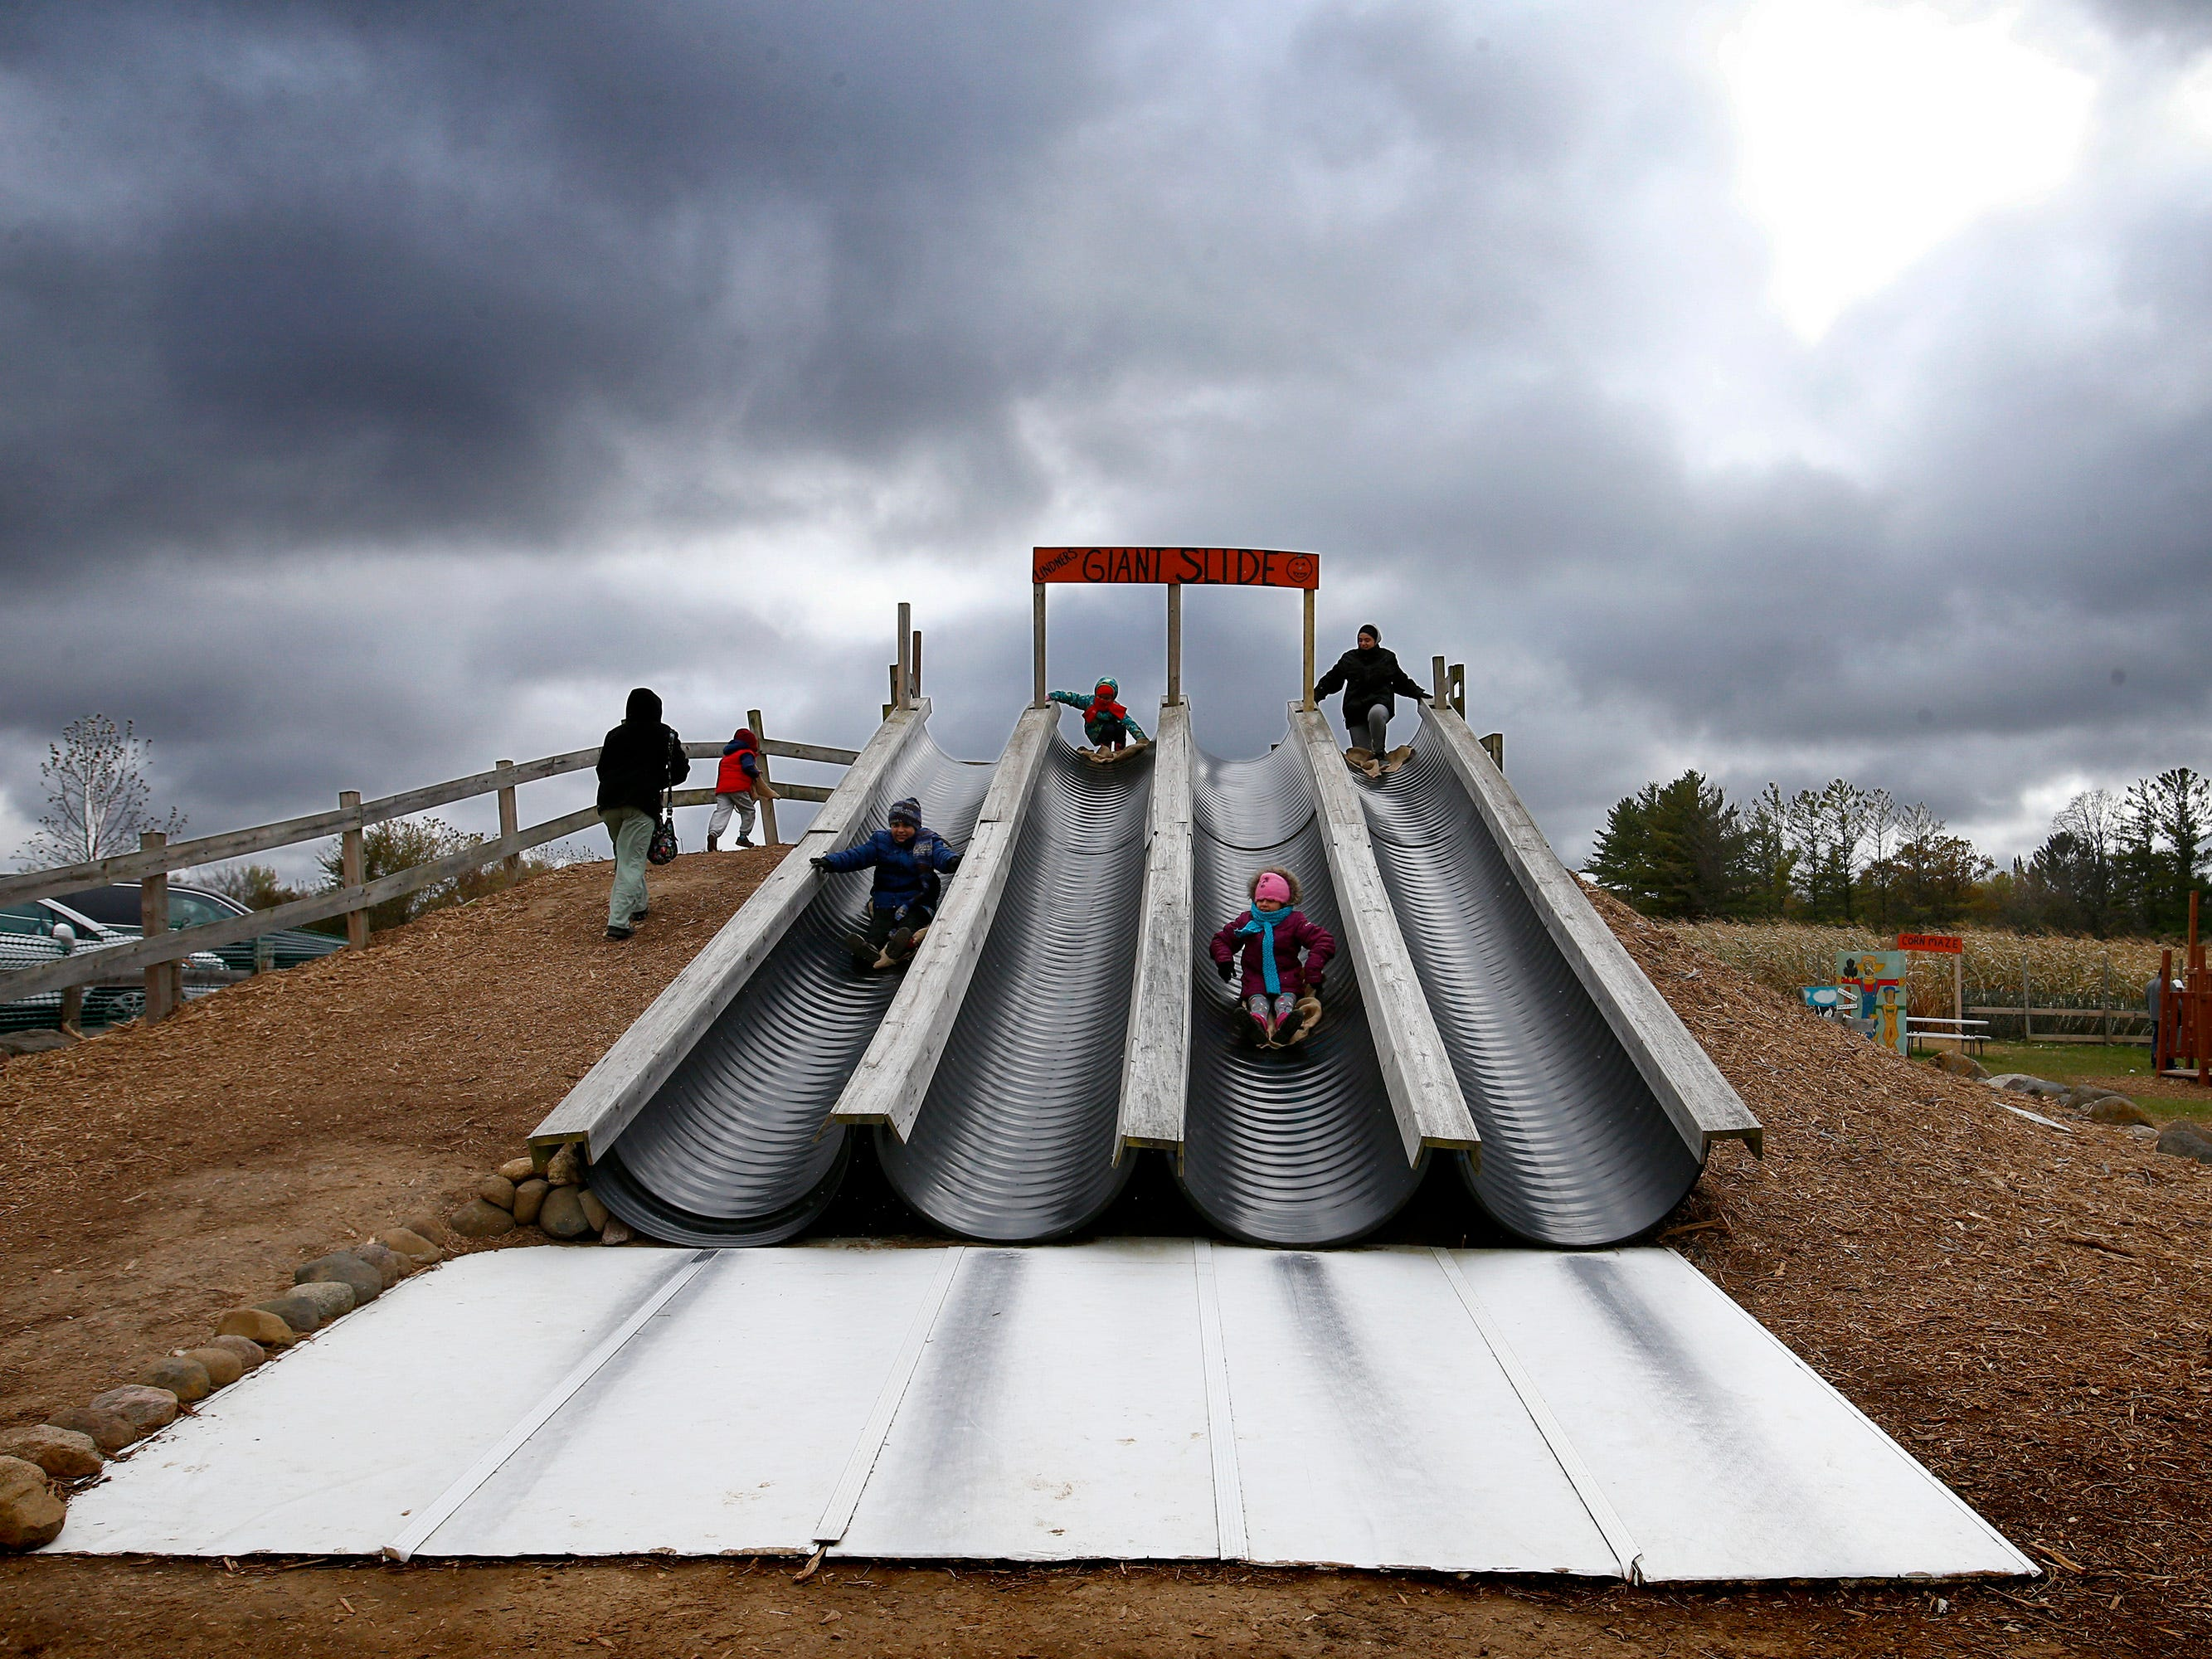 Families play on the Giant Slide at the Lindner Pumpkin Farm in New Berlin on Oct. 20.